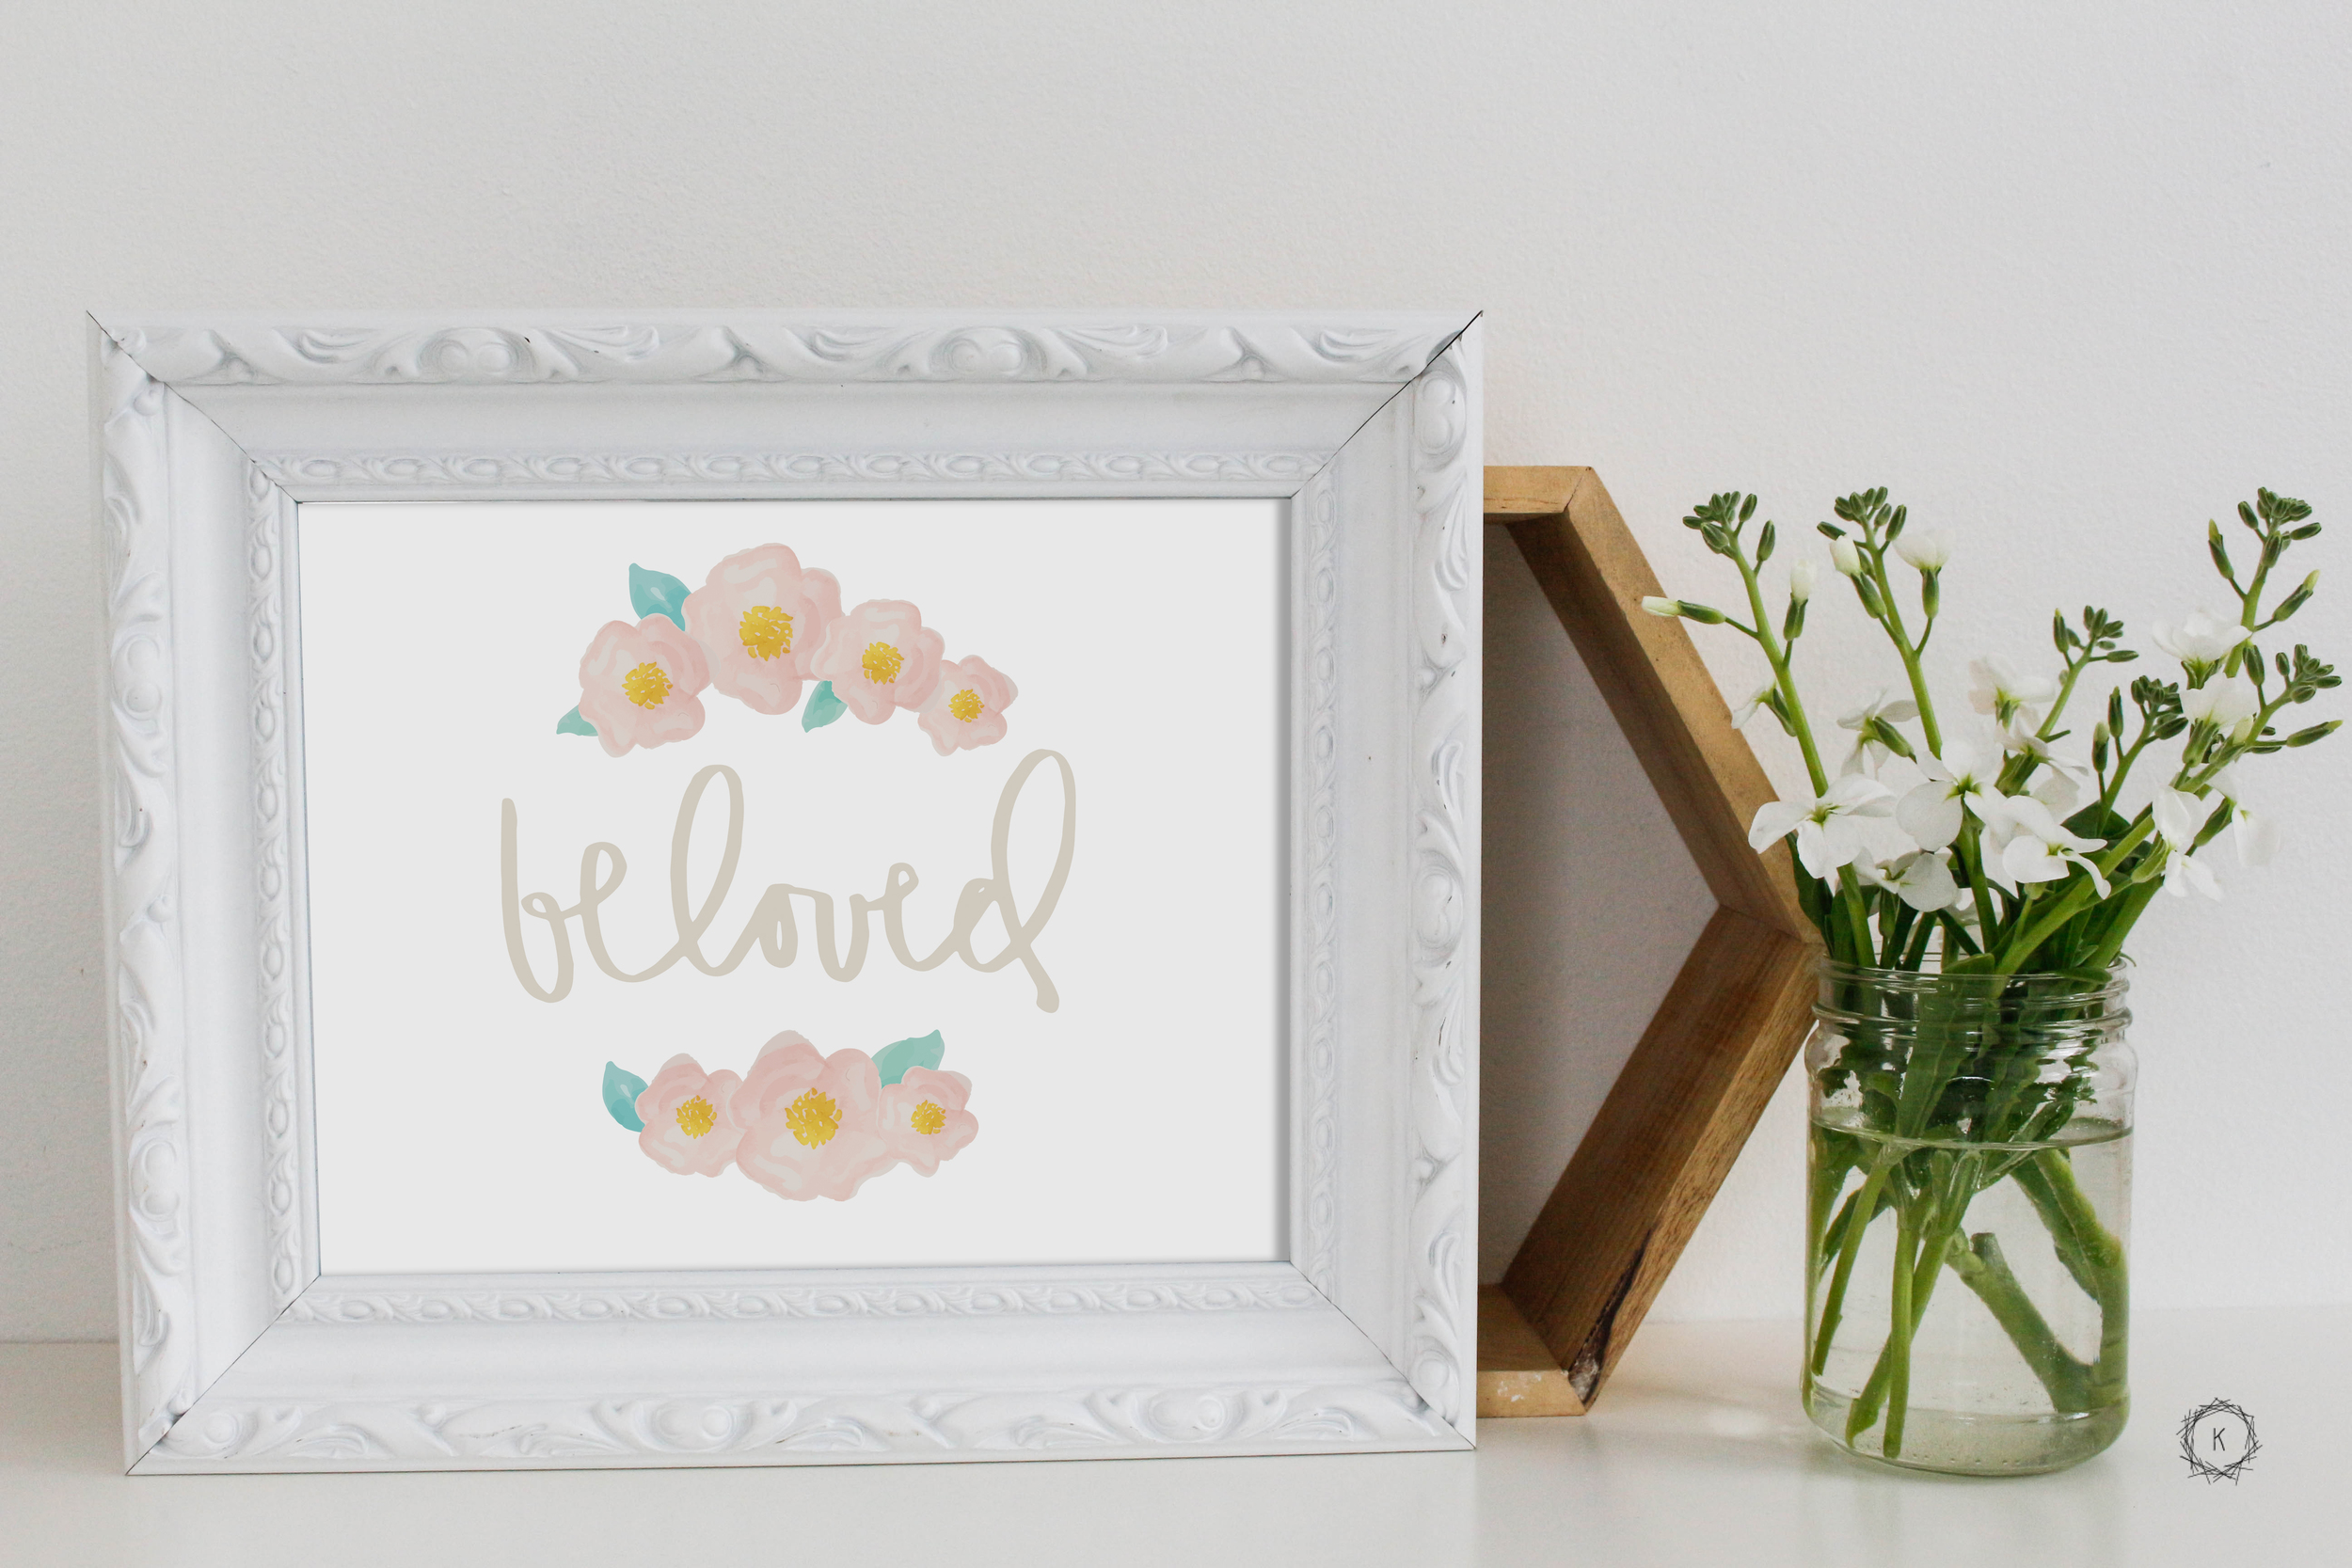 Beloved Art Print // Hand Lettered Print + Watercolor Flowers